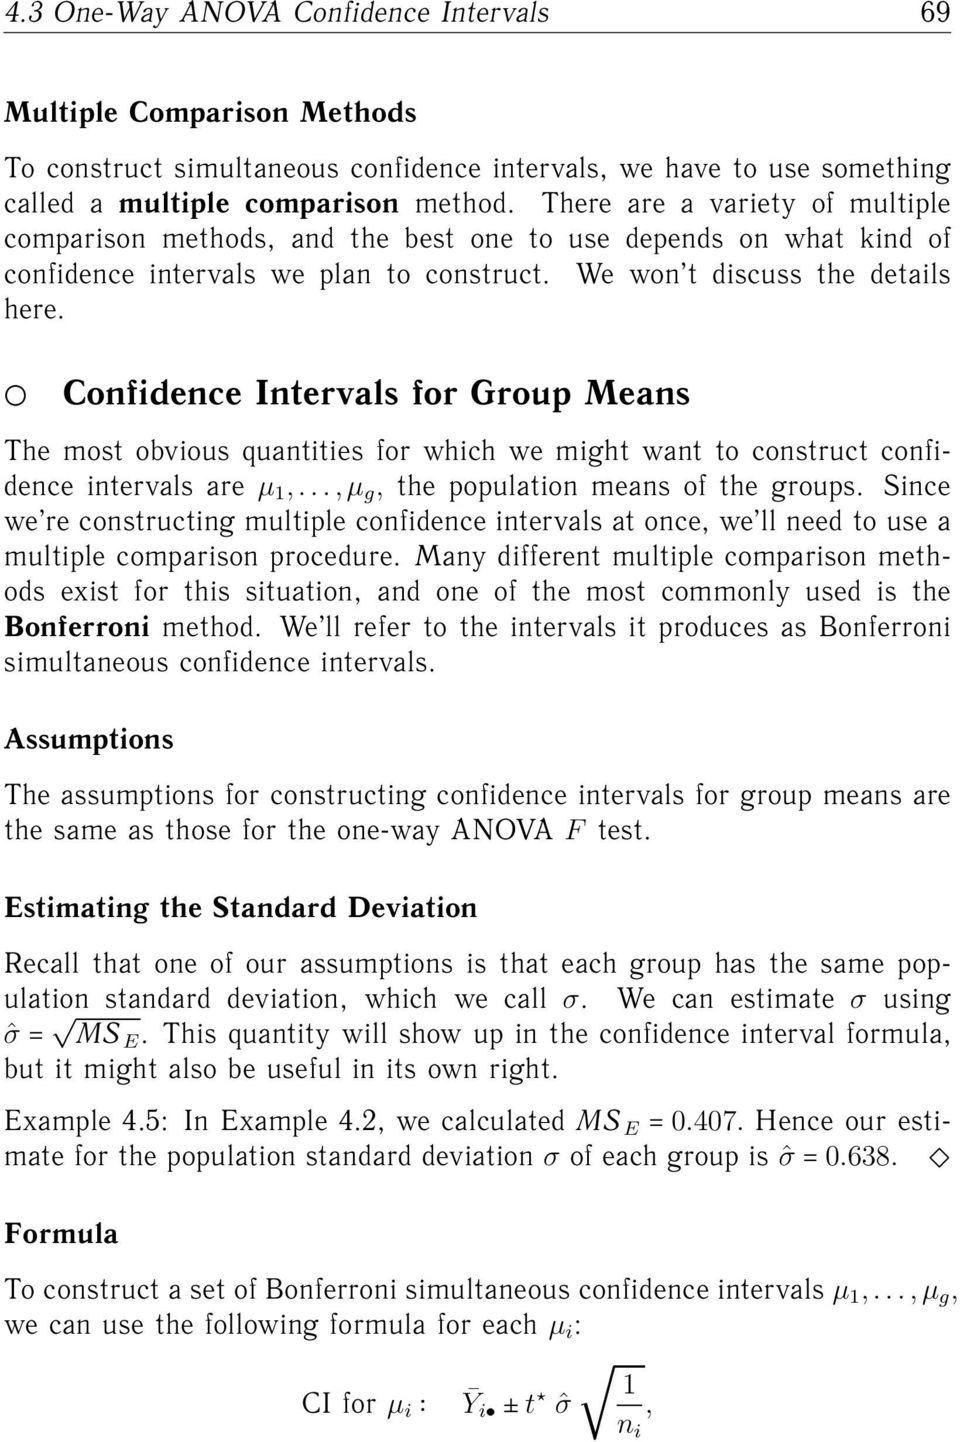 Z Confidence Intervals for Group Means The most obvious quantities for which we might want to construct confidence intervals are µ 1,..., µ g, the population means of the groups.